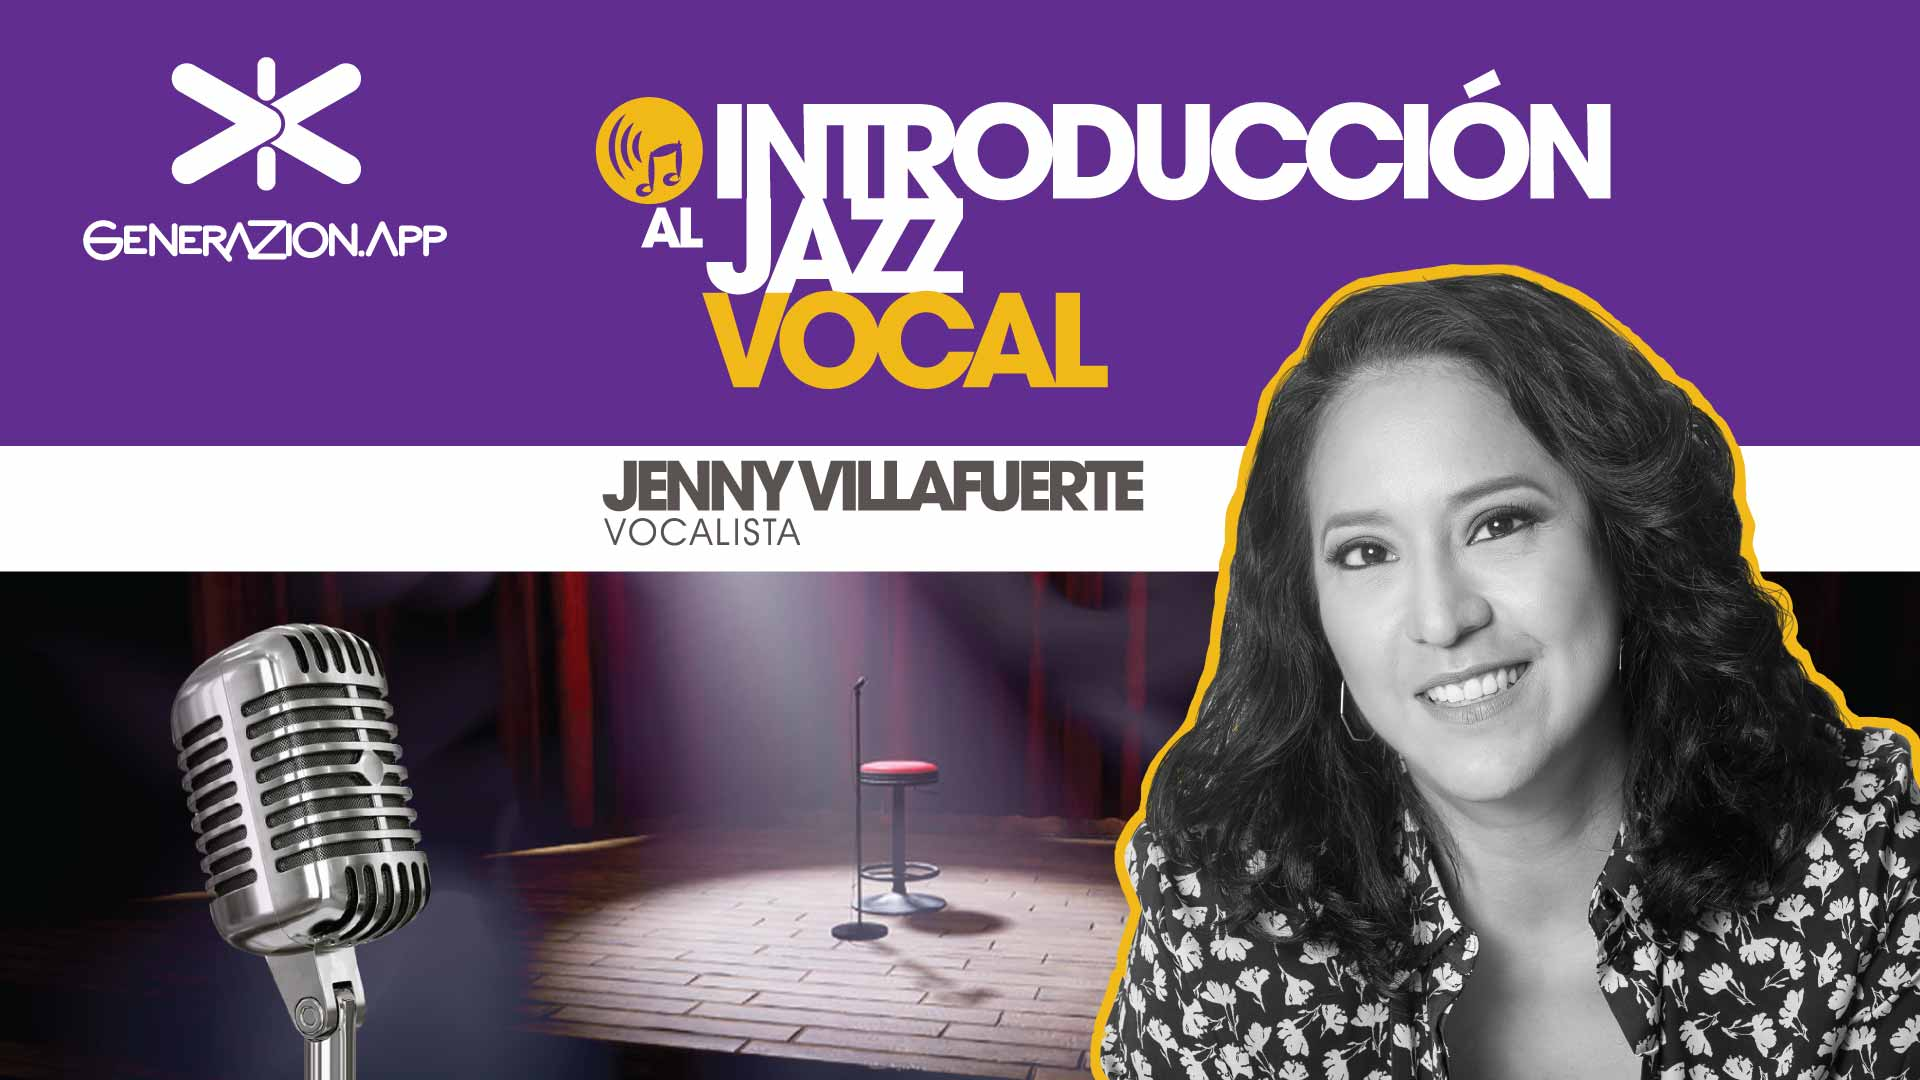 Introduccion-al-Jazz-vocal-1920px